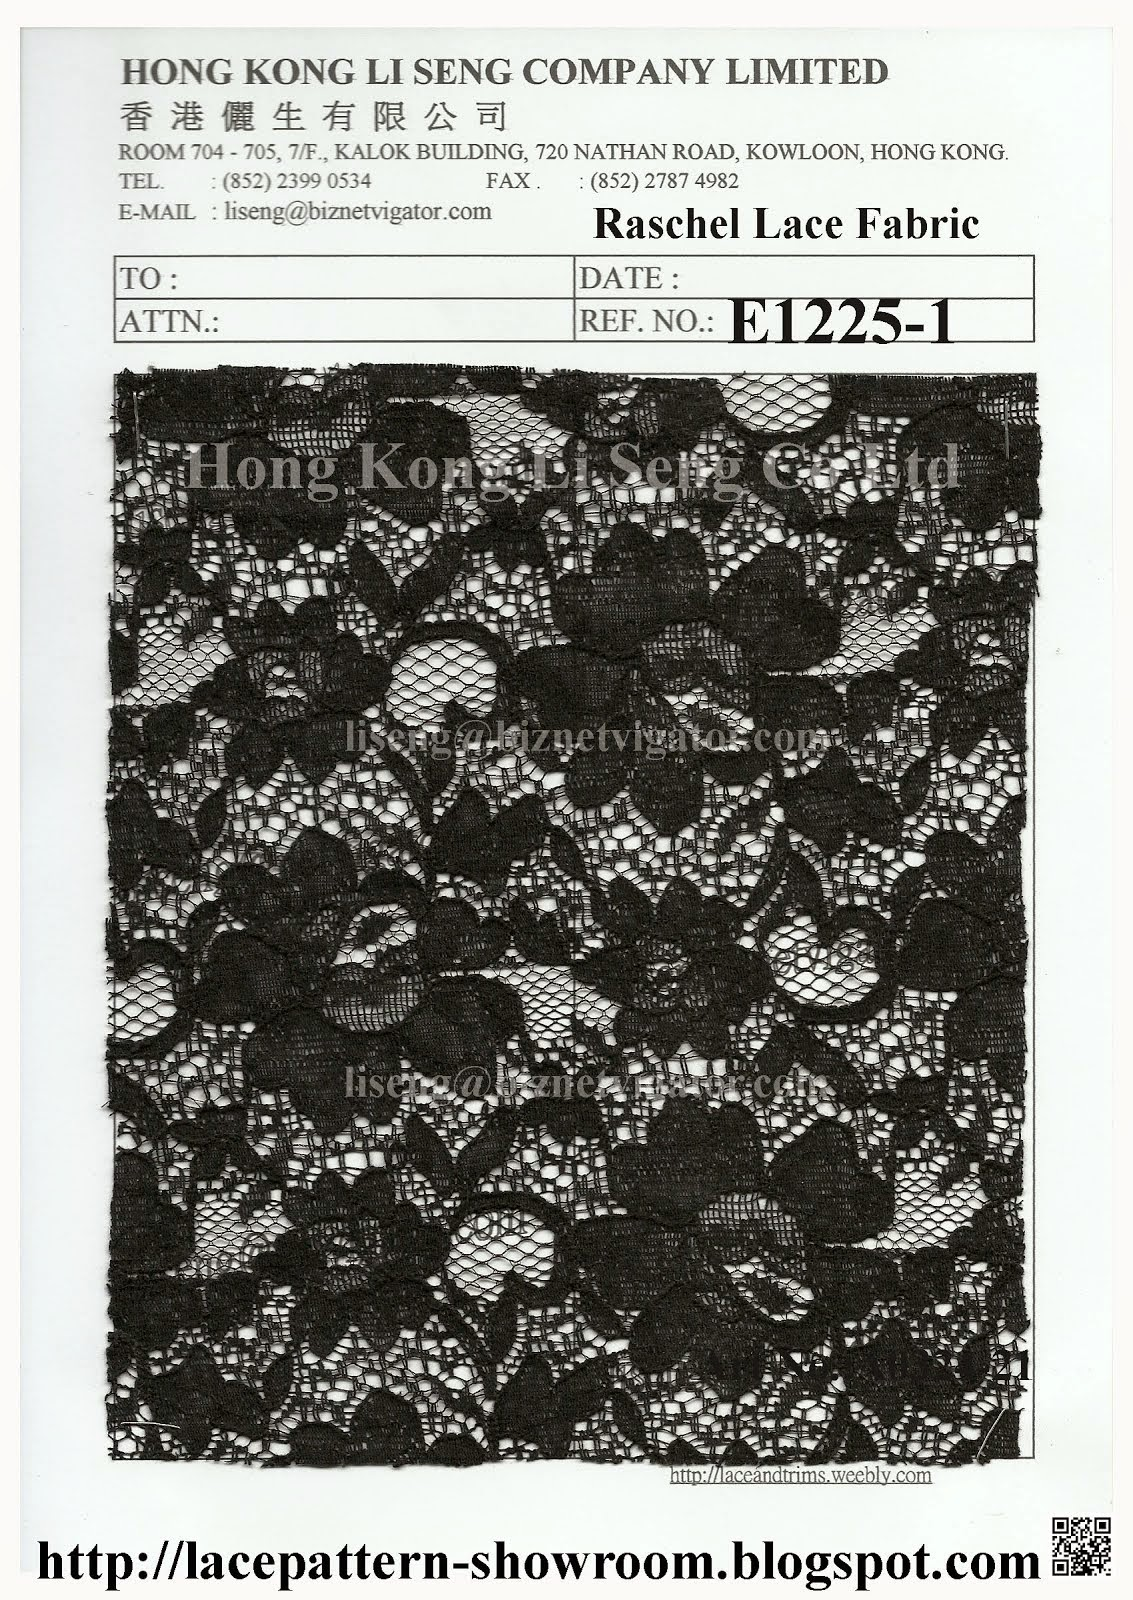 New Raschel Lace Fabric Manufacturer Wholesale Supplier - Hong Kong Li Seng Co Ltd